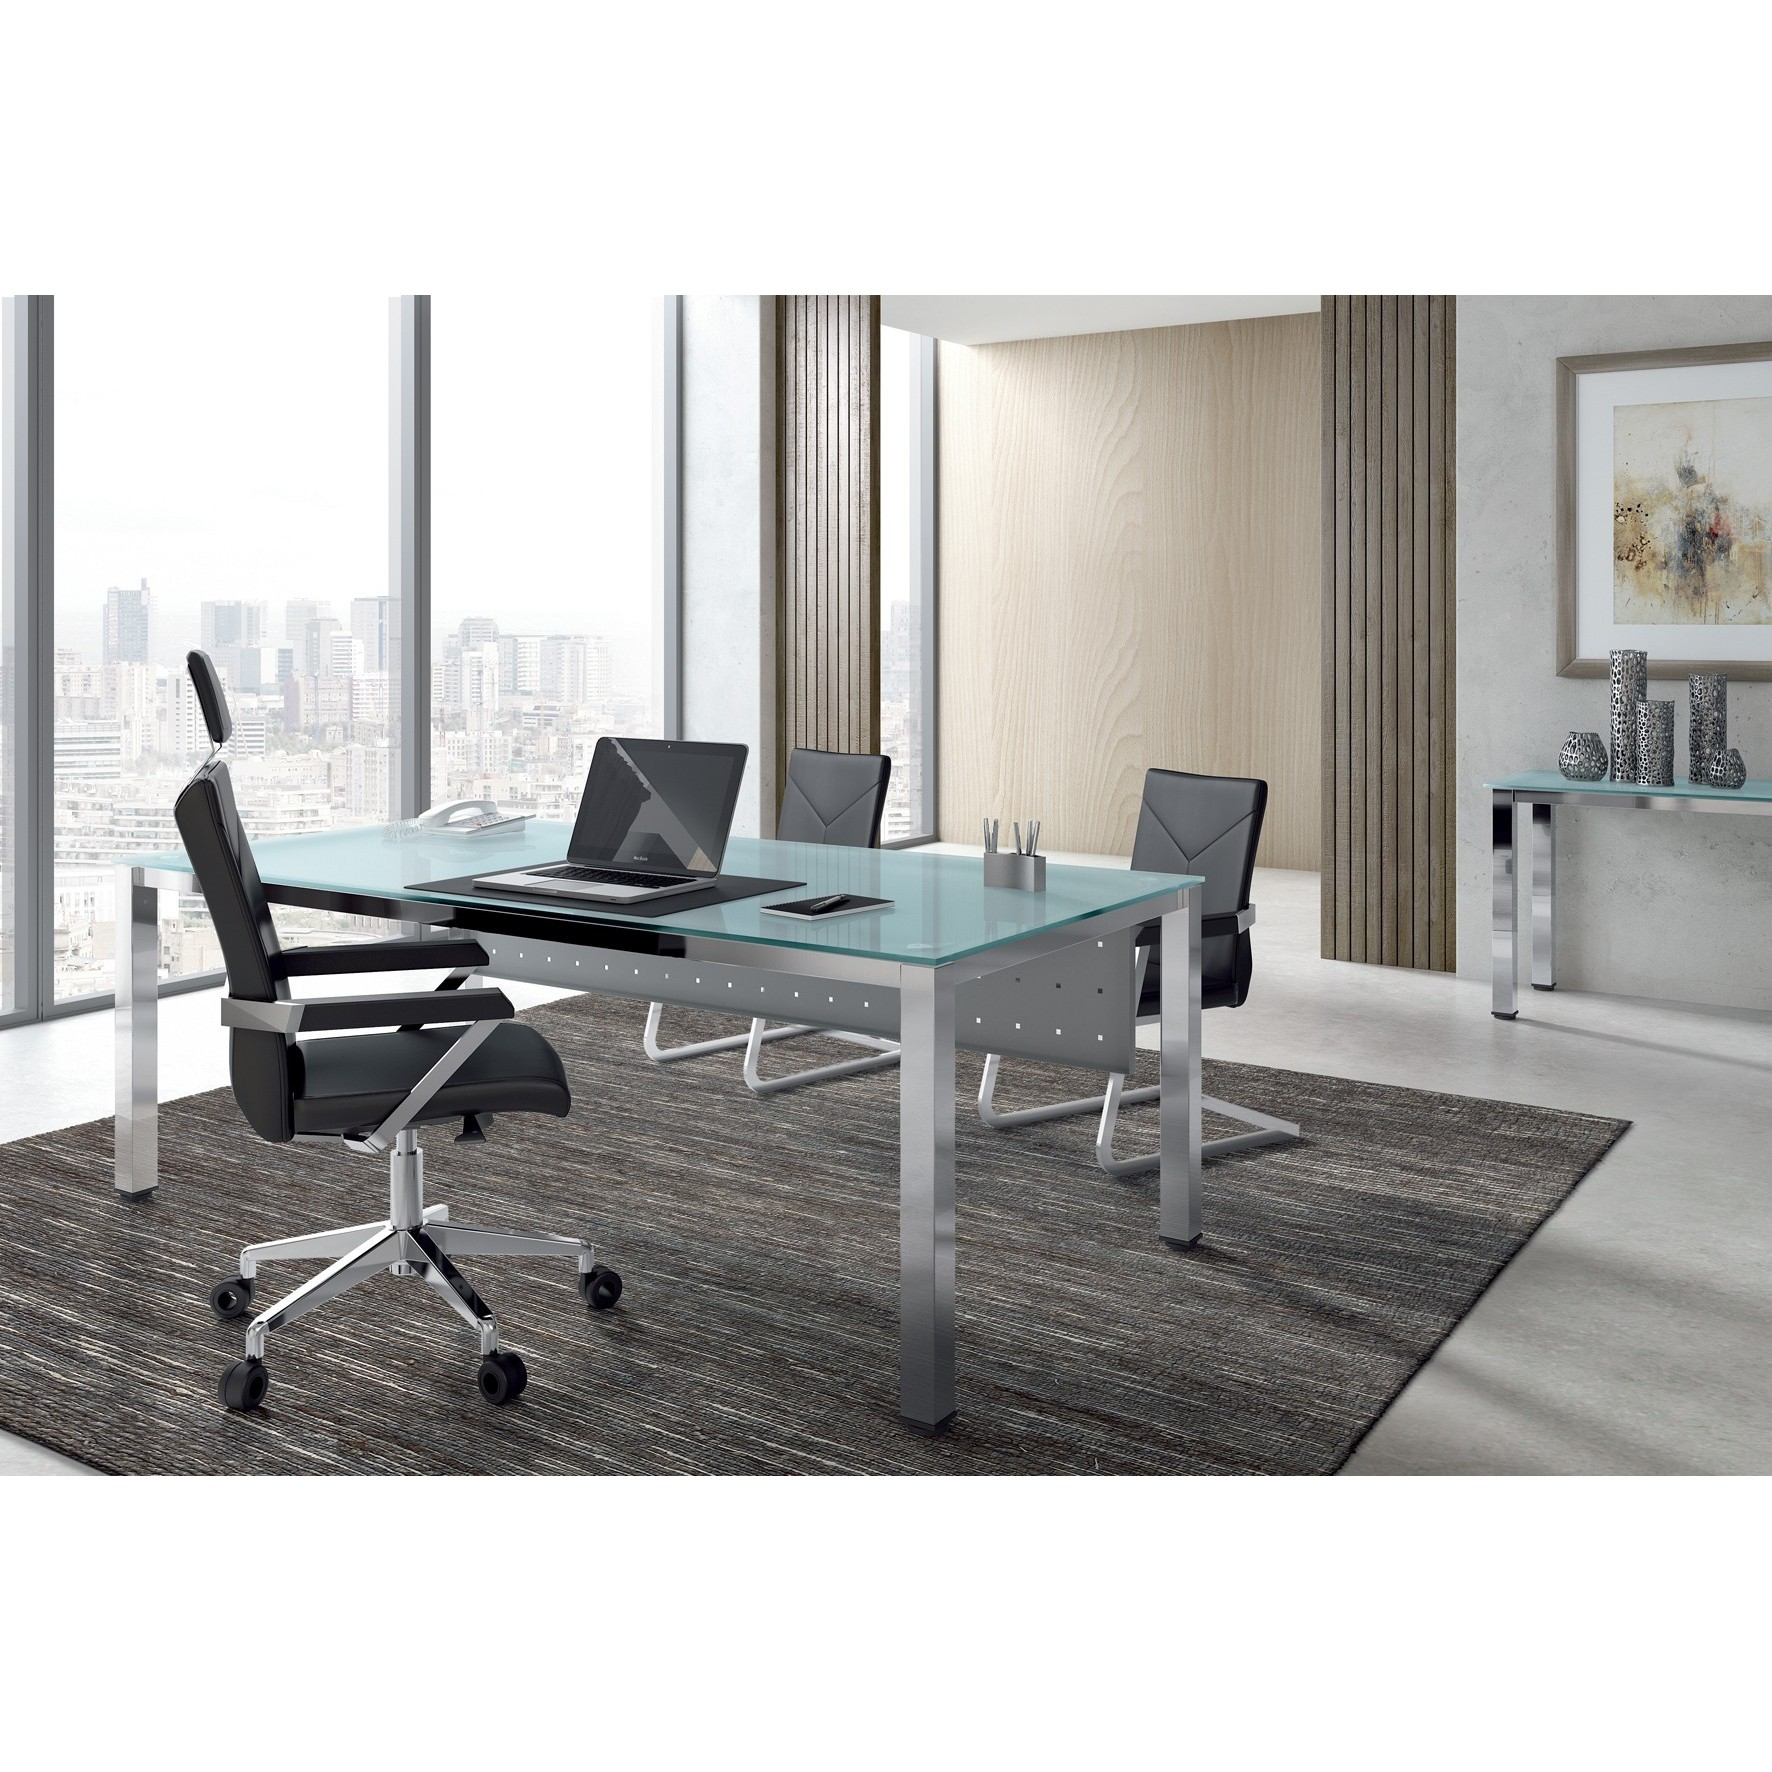 TABLE OFFICE 'S EXECUTIVE SERIES 180X80 ALUMINUM/CRYSTAL